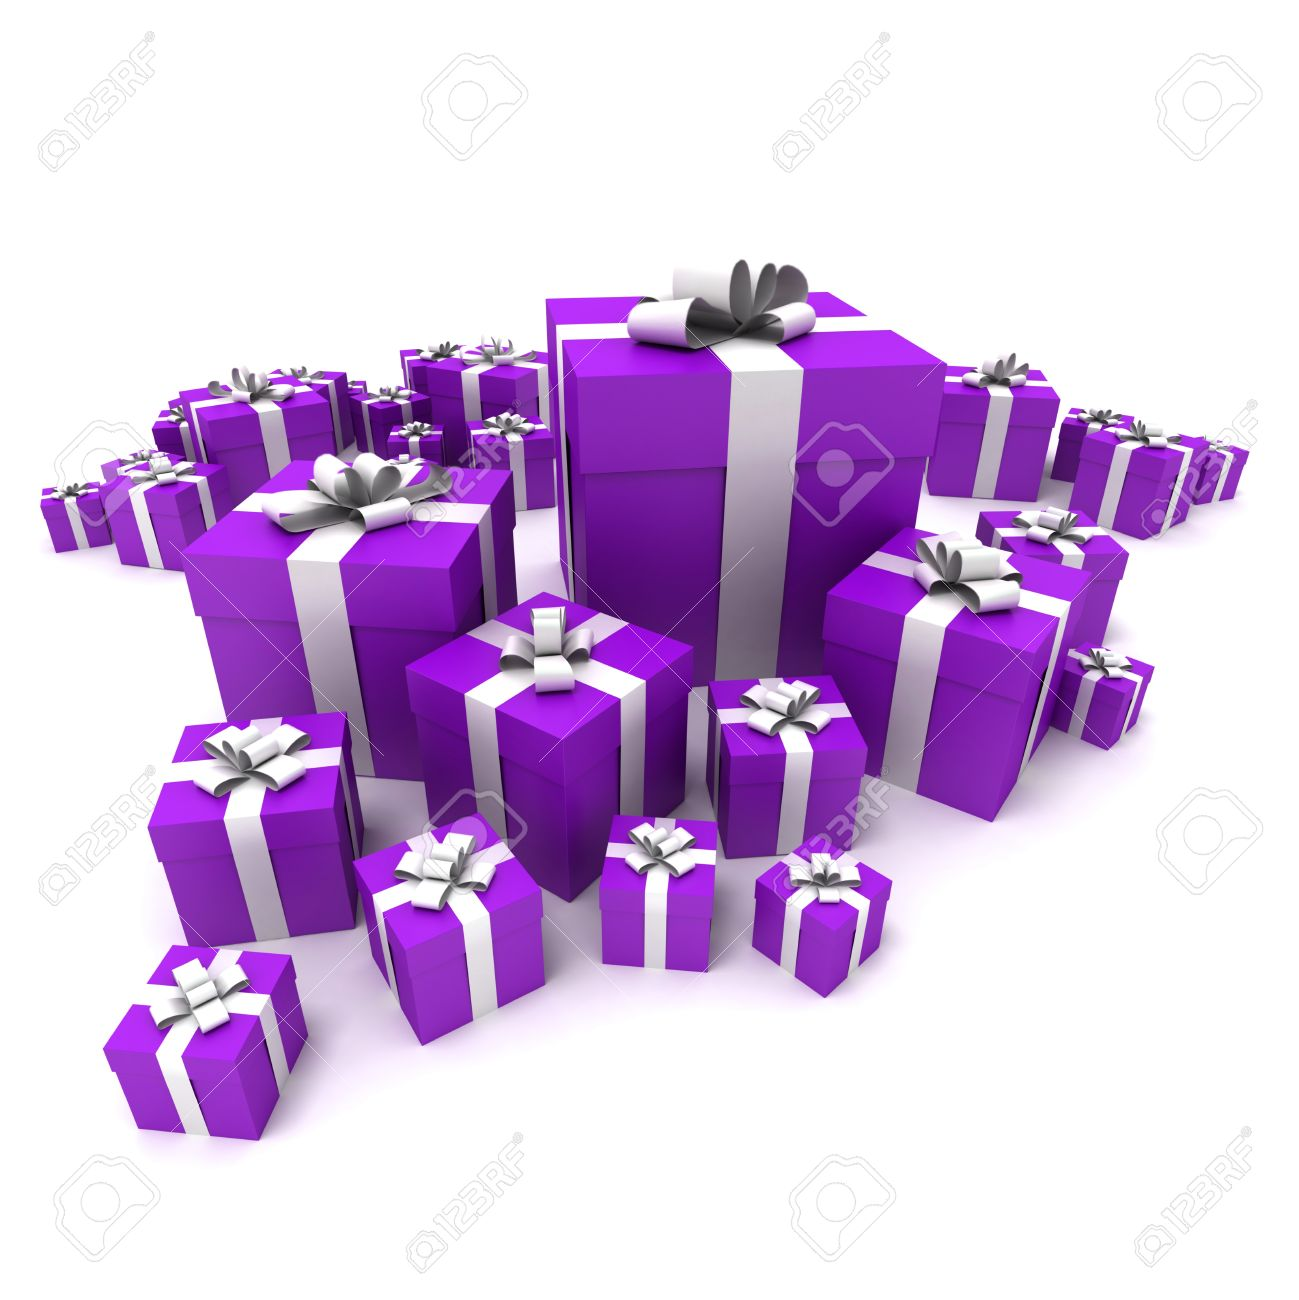 3D rendering of a big group of purple gift boxes with a white ribbons in different sizes  sc 1 st  123RF.com & 3D Rendering Of A Big Group Of Purple Gift Boxes With A White ...